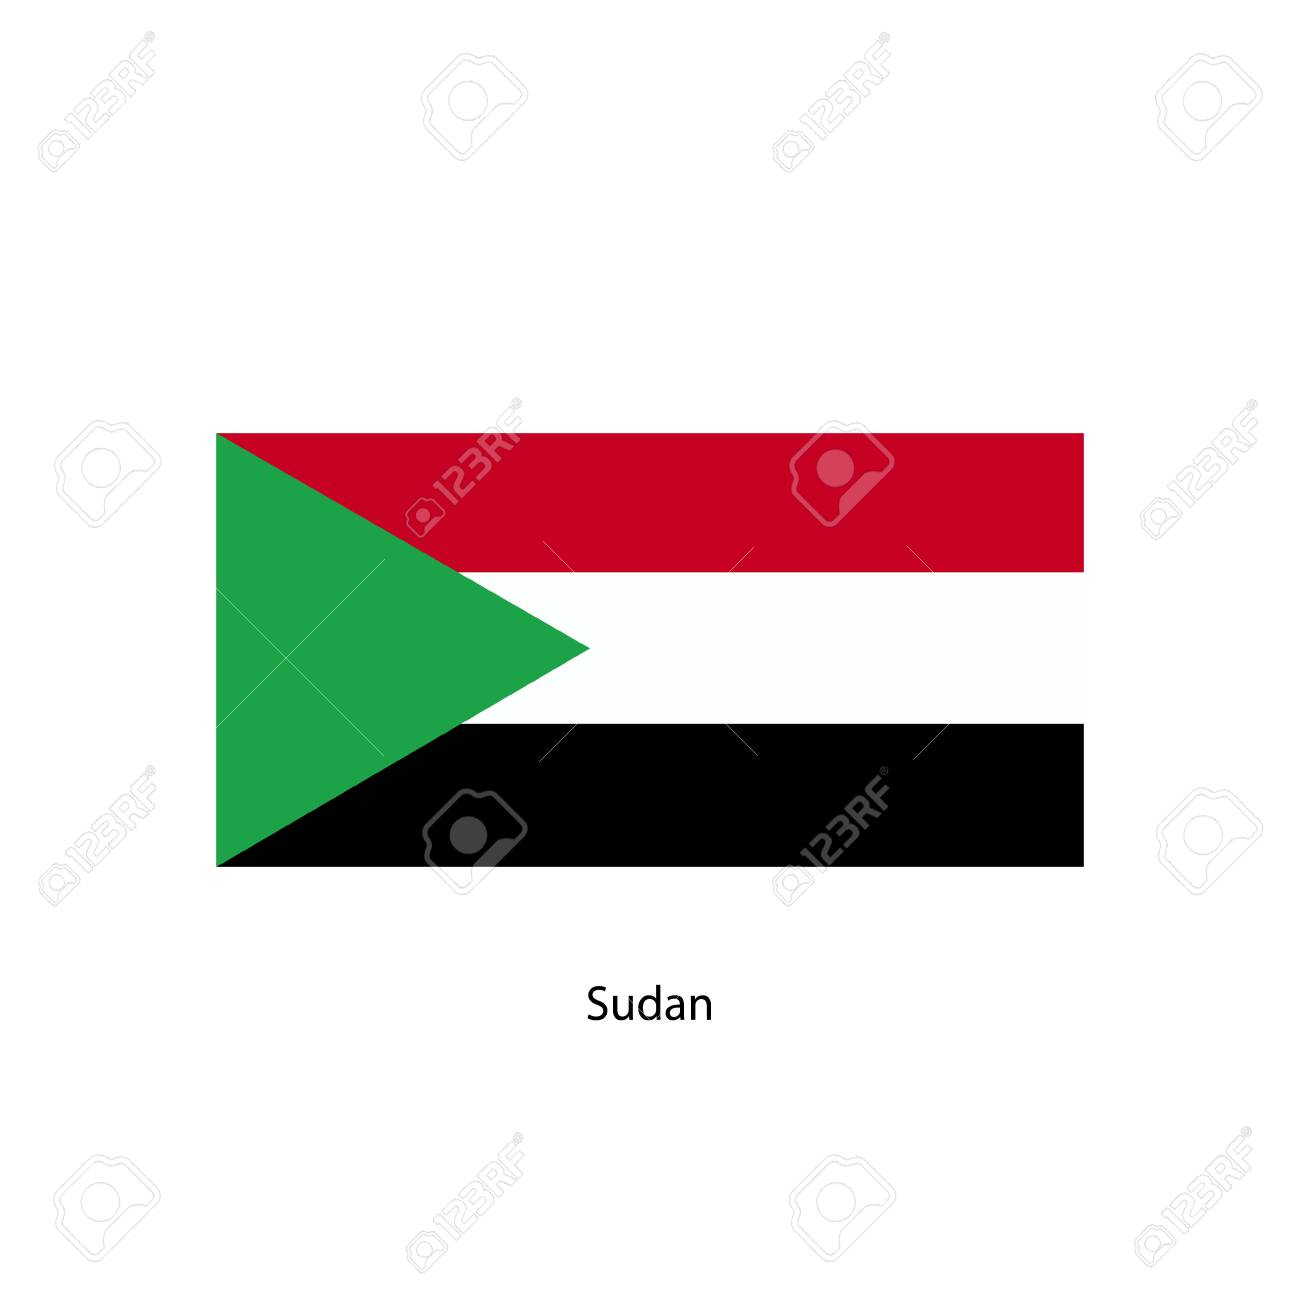 sudan flag official colors and proportion correctly national